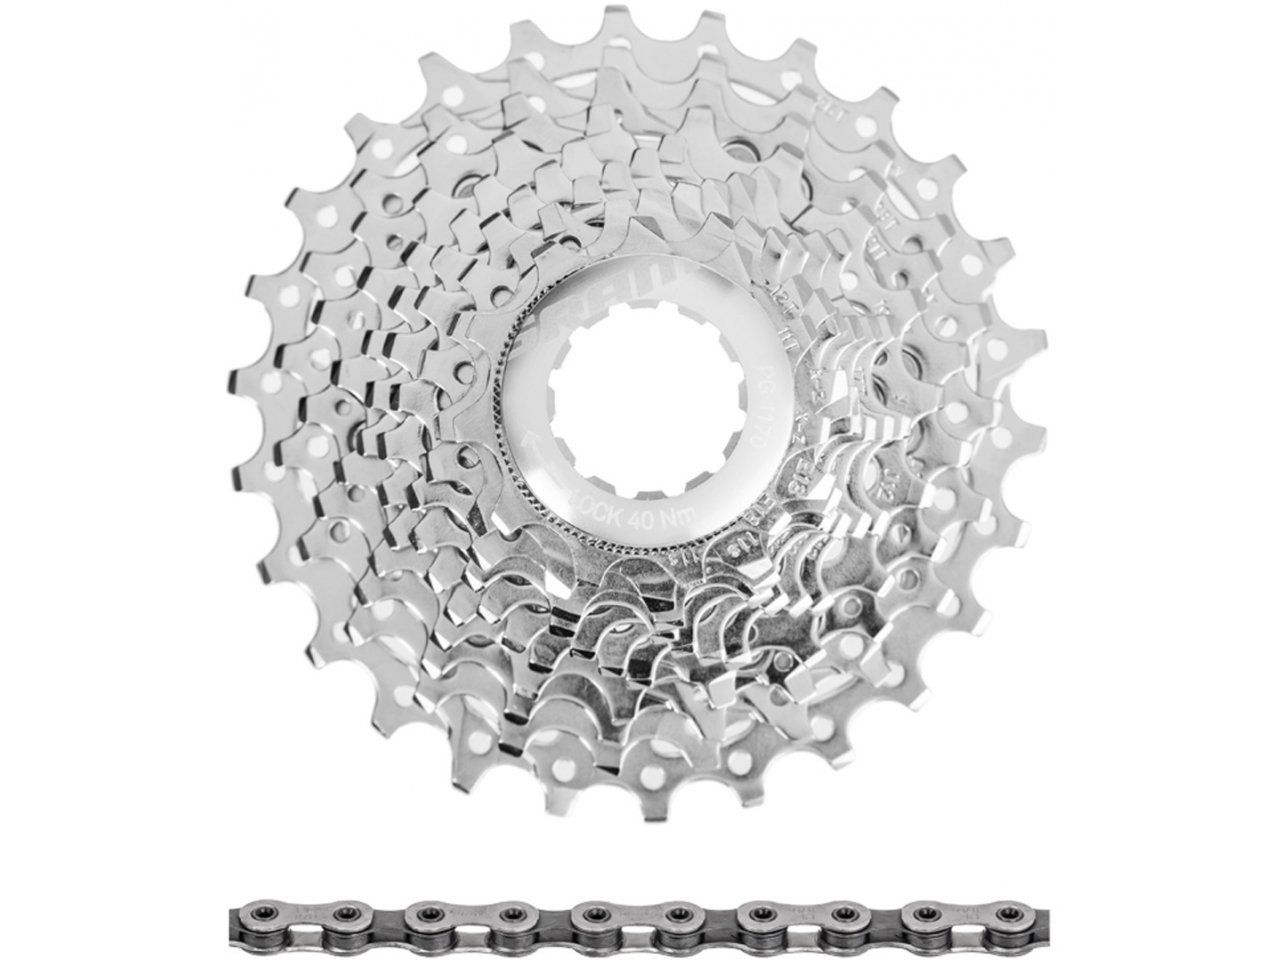 SRAM-Force-PG-1170-Cassette-PC-1170-11-speed-Chain-Set-silver-11-26-50094-251935-1550731491